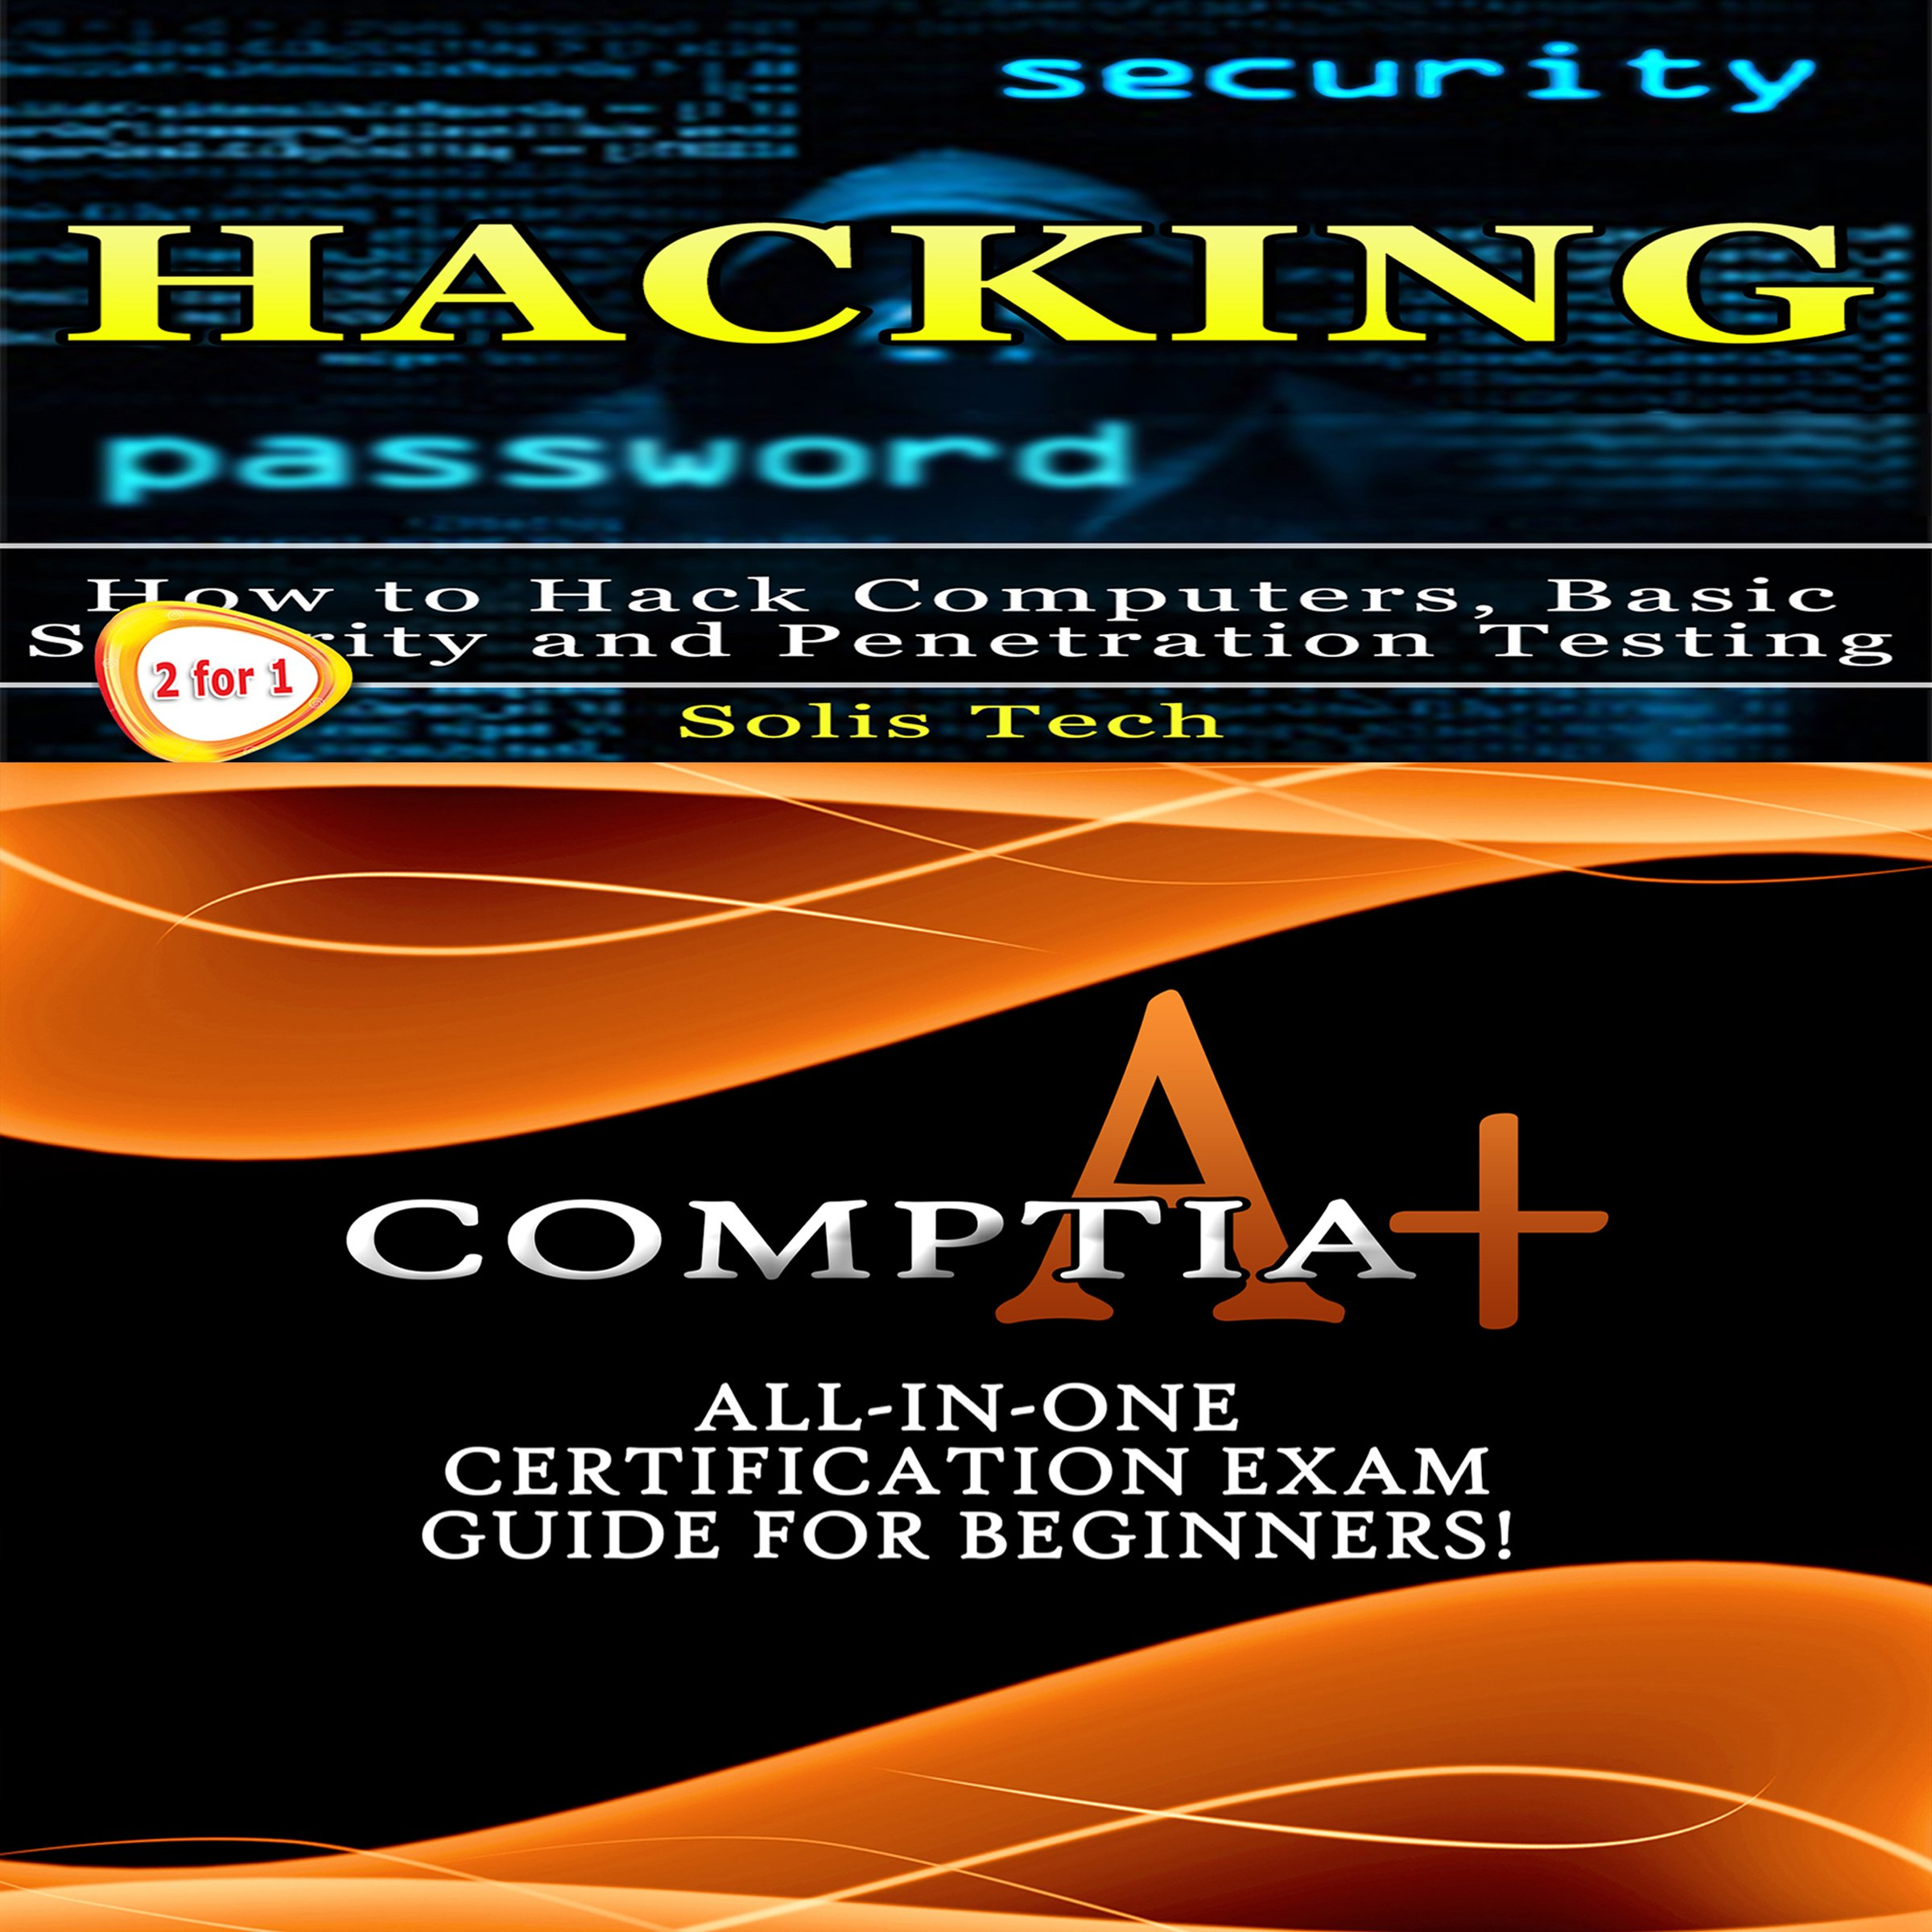 Hacking & CompTIA A+